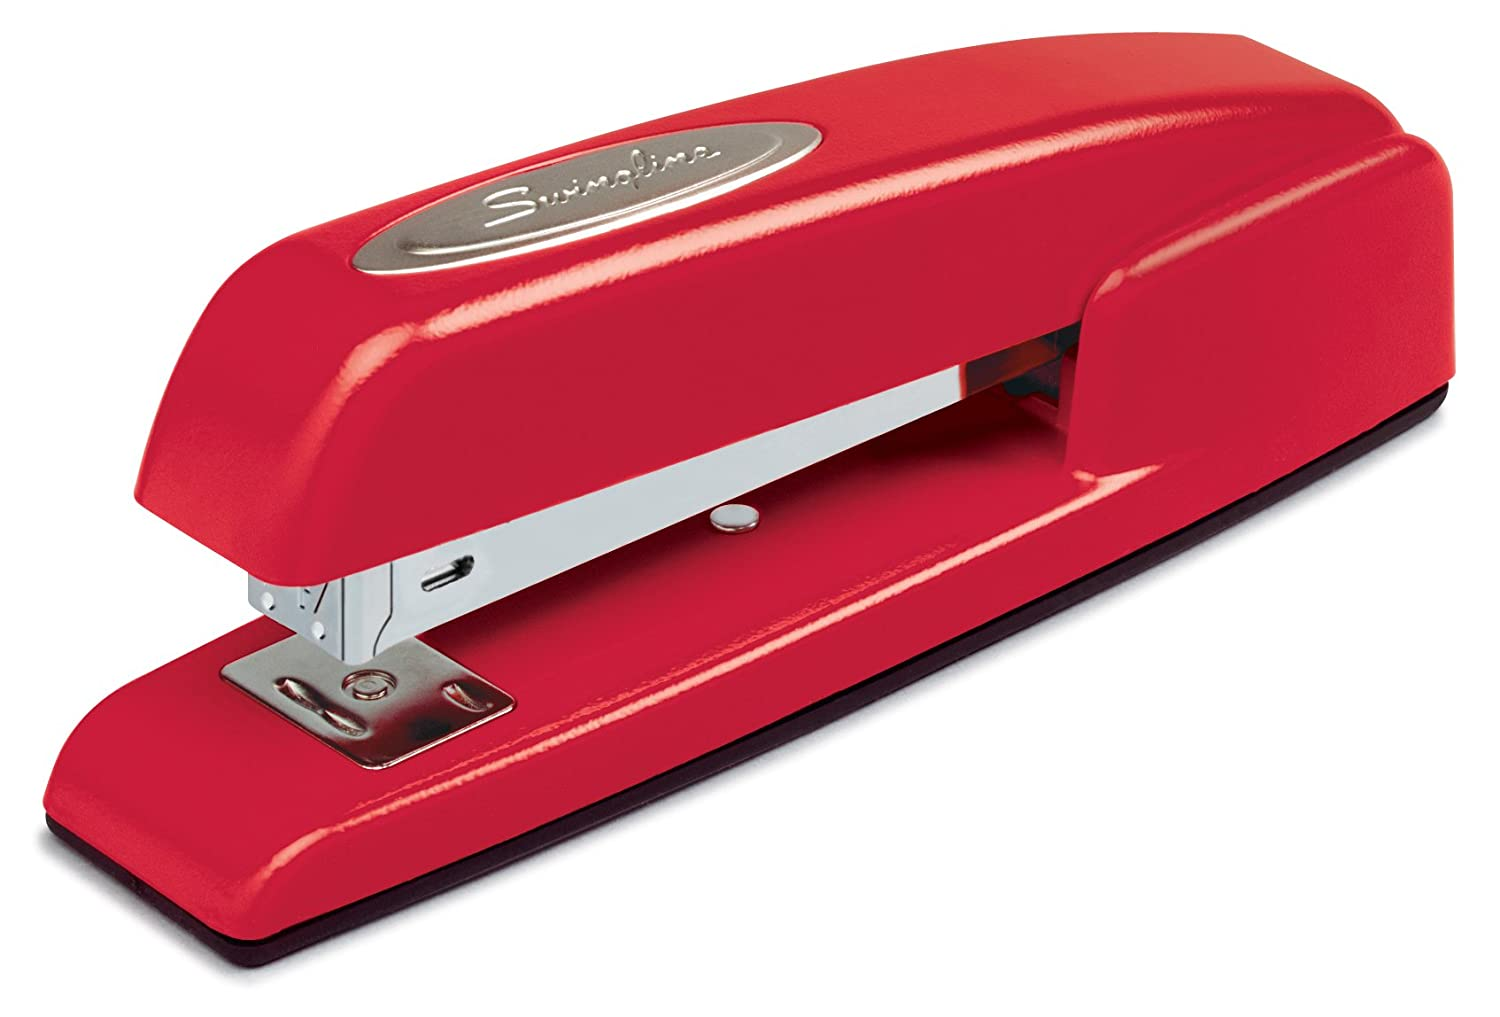 Red Swingline Stapler